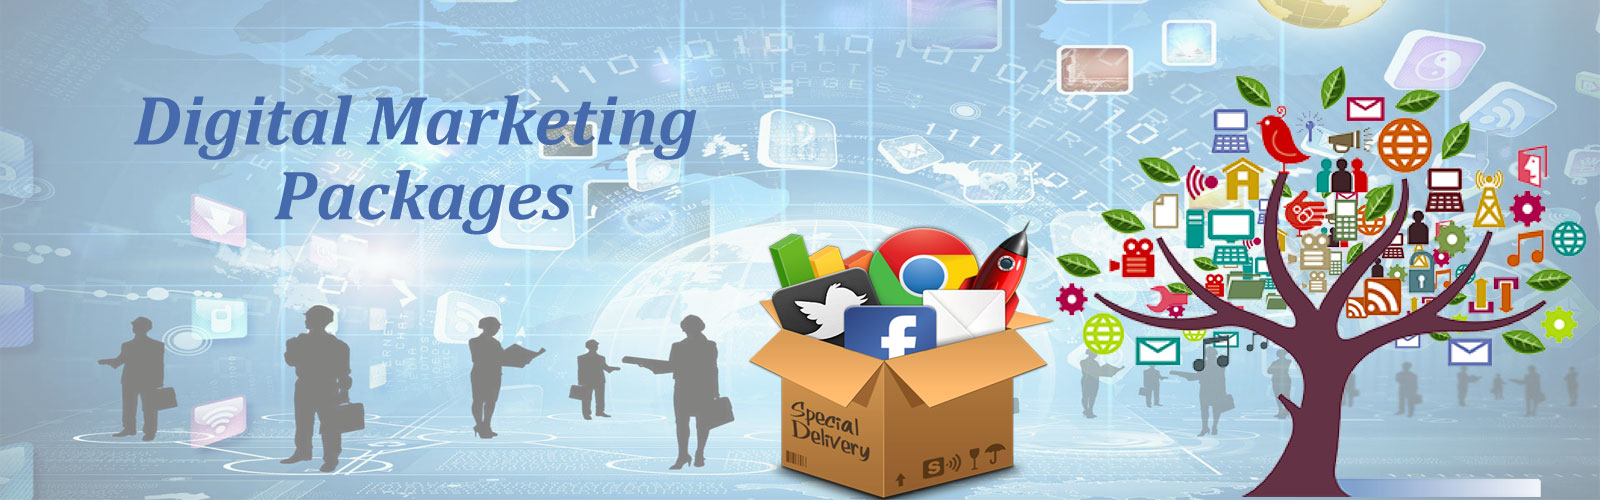 digital marketing packages in hyderabad